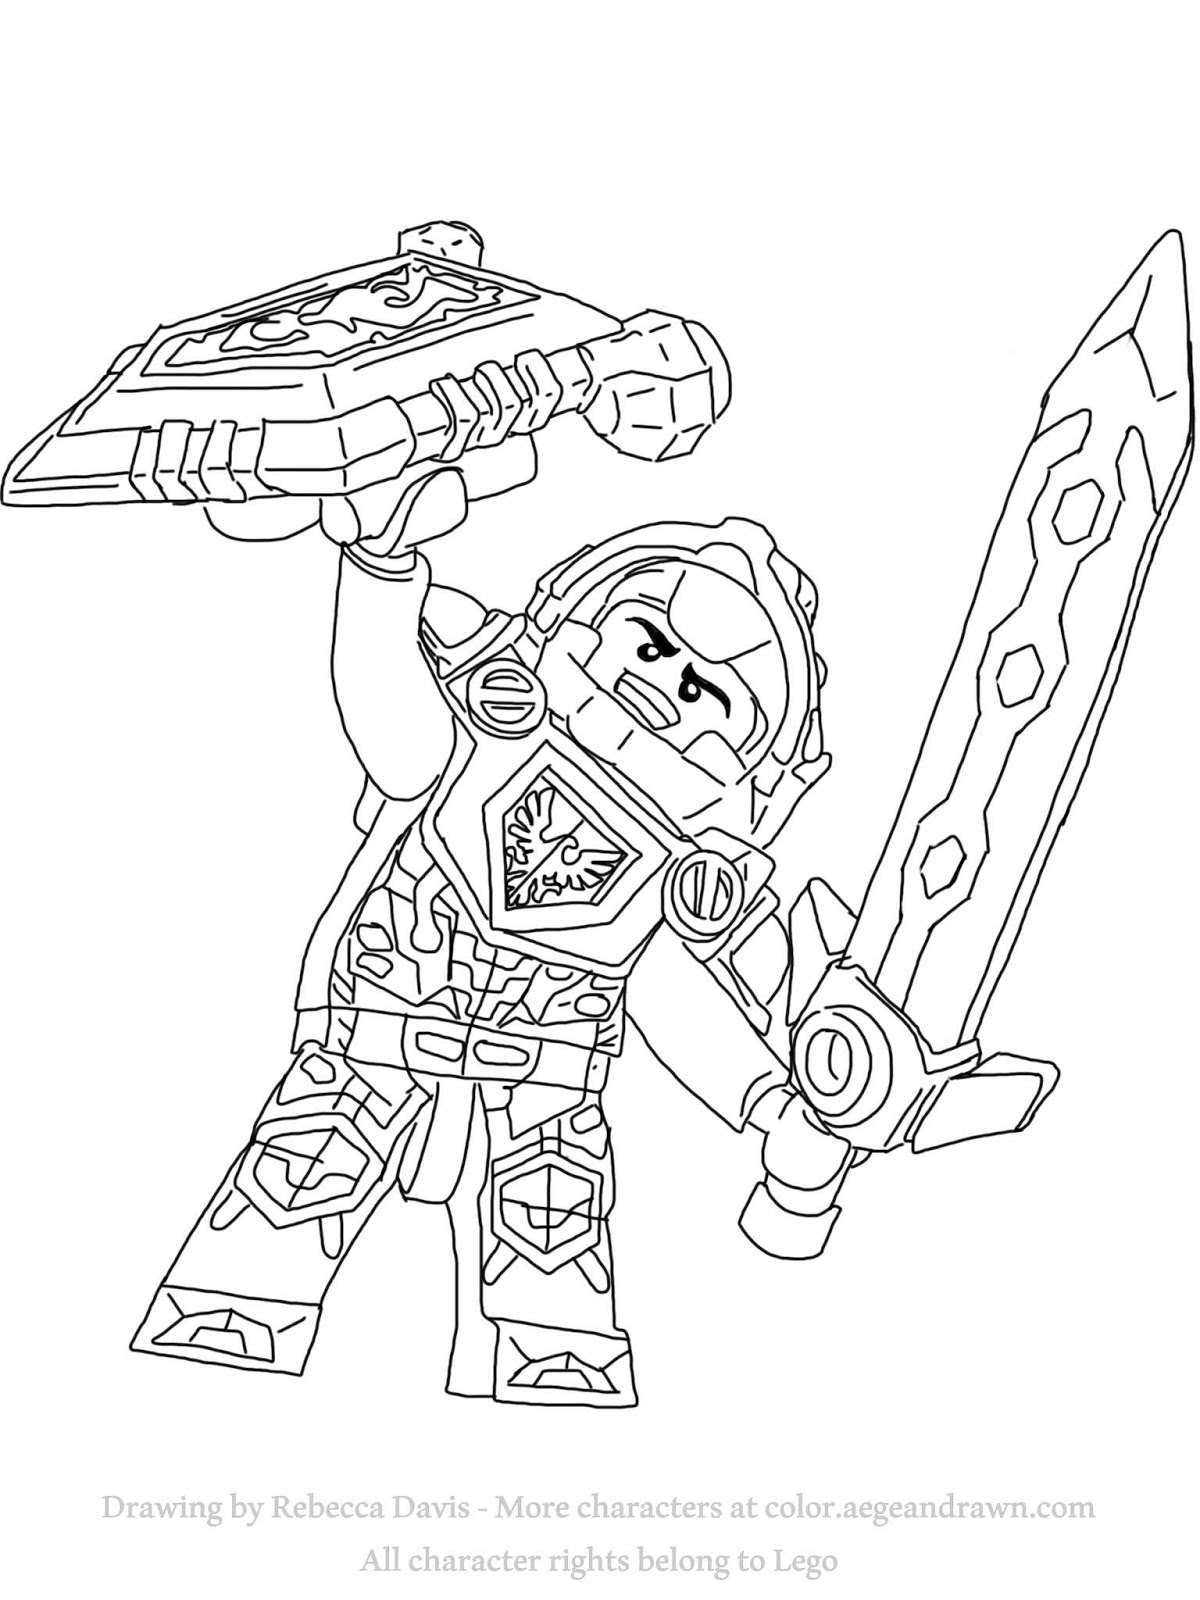 Nexo Knights Coloring Pages | Aegean Drawn